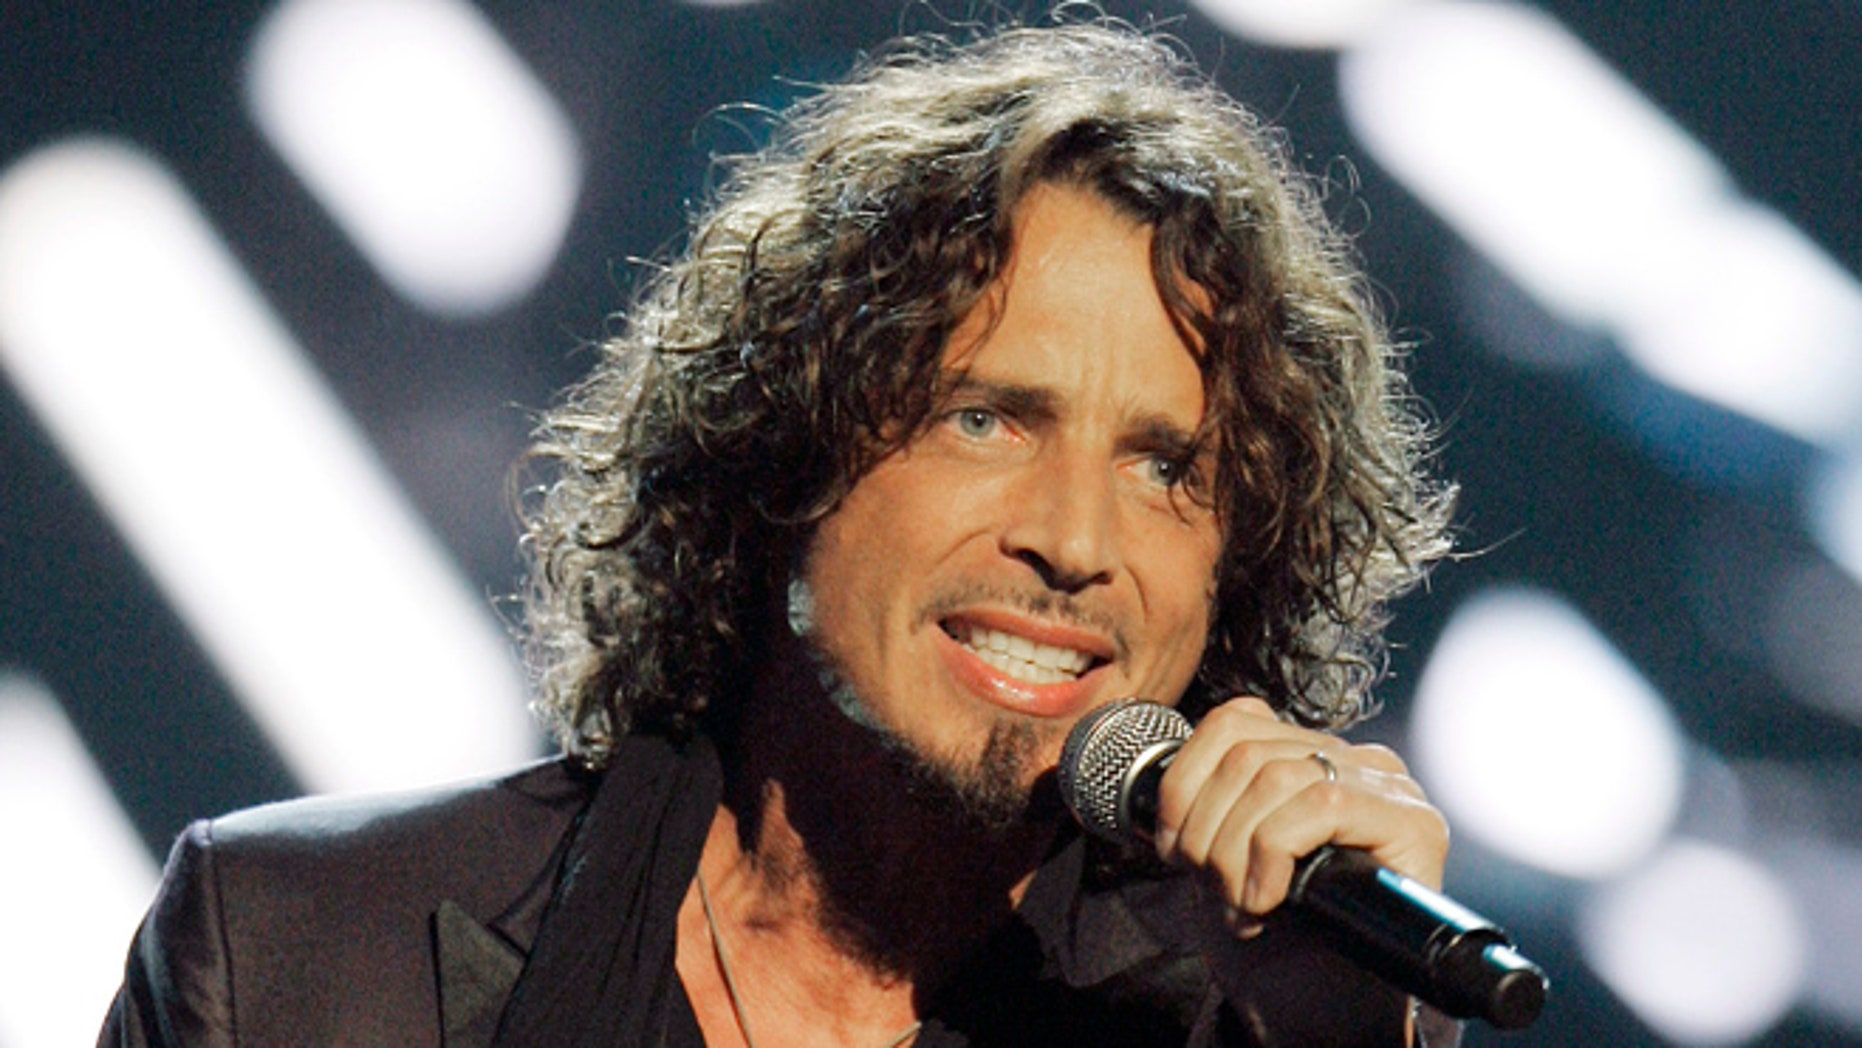 Soundgarden's lead singer, Chris Cornell, committed suicide by hanging in May 2017.